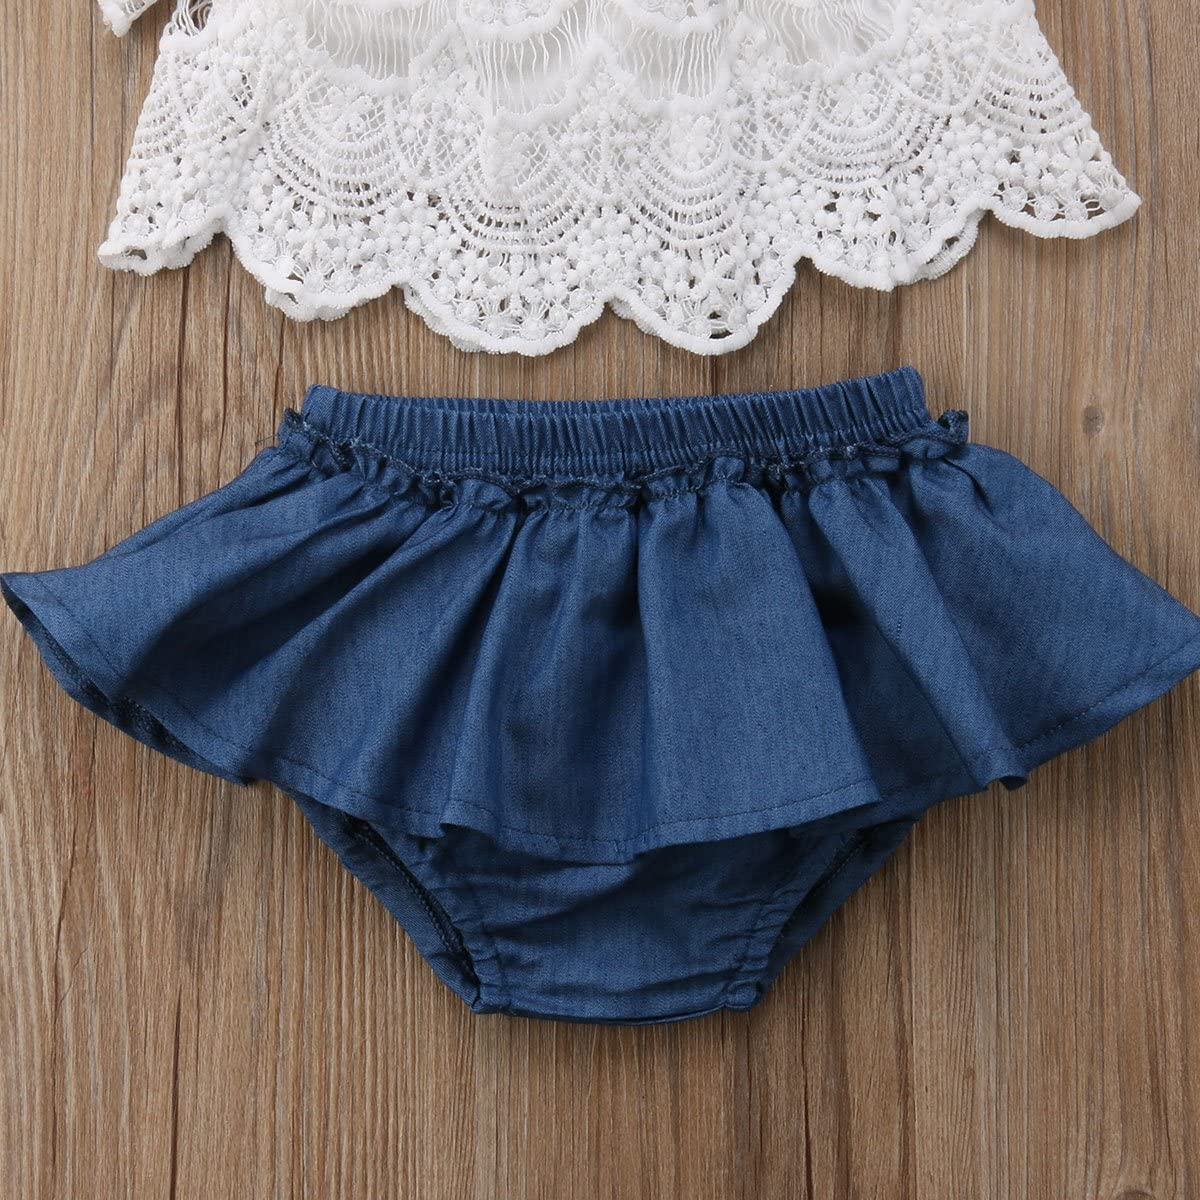 Newborn Toddler Girls Skirt Short Sets White Lace Flying Sleeve Shirt Tops Short Pants Tutu Skirt Summer Clothes